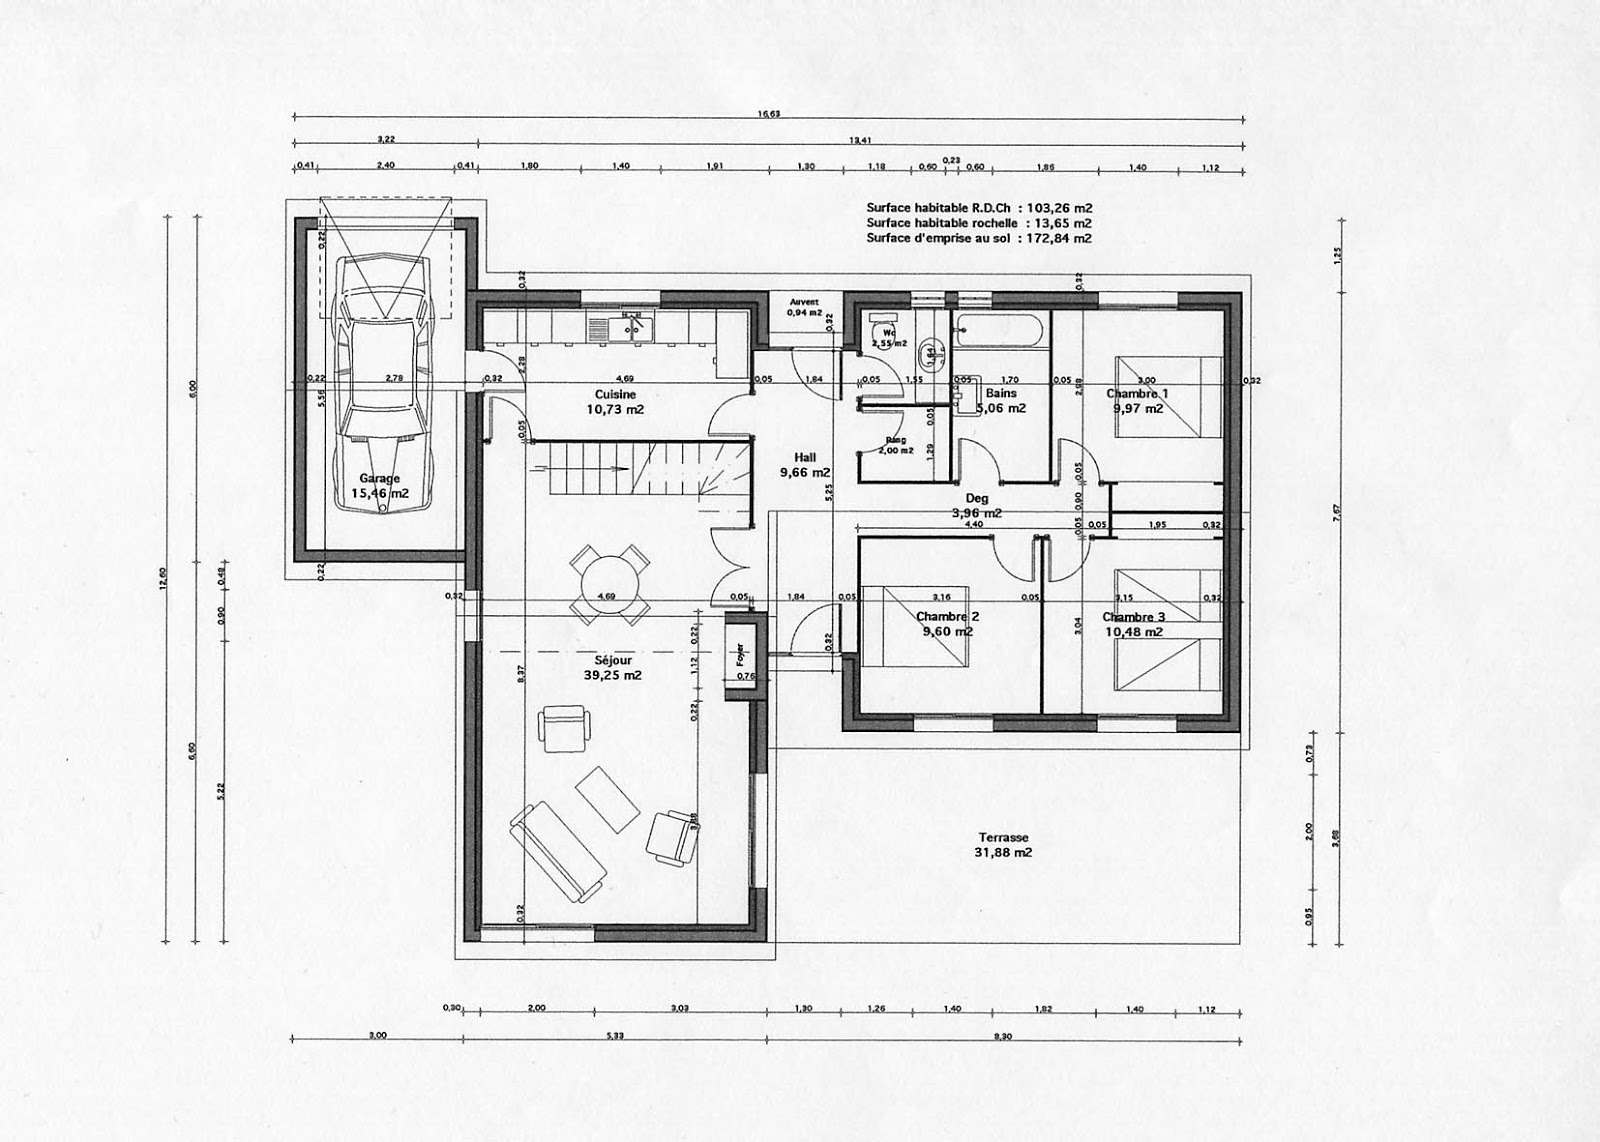 Plans de maison 2 book batiment architecture - Plans de maison gratuit ...